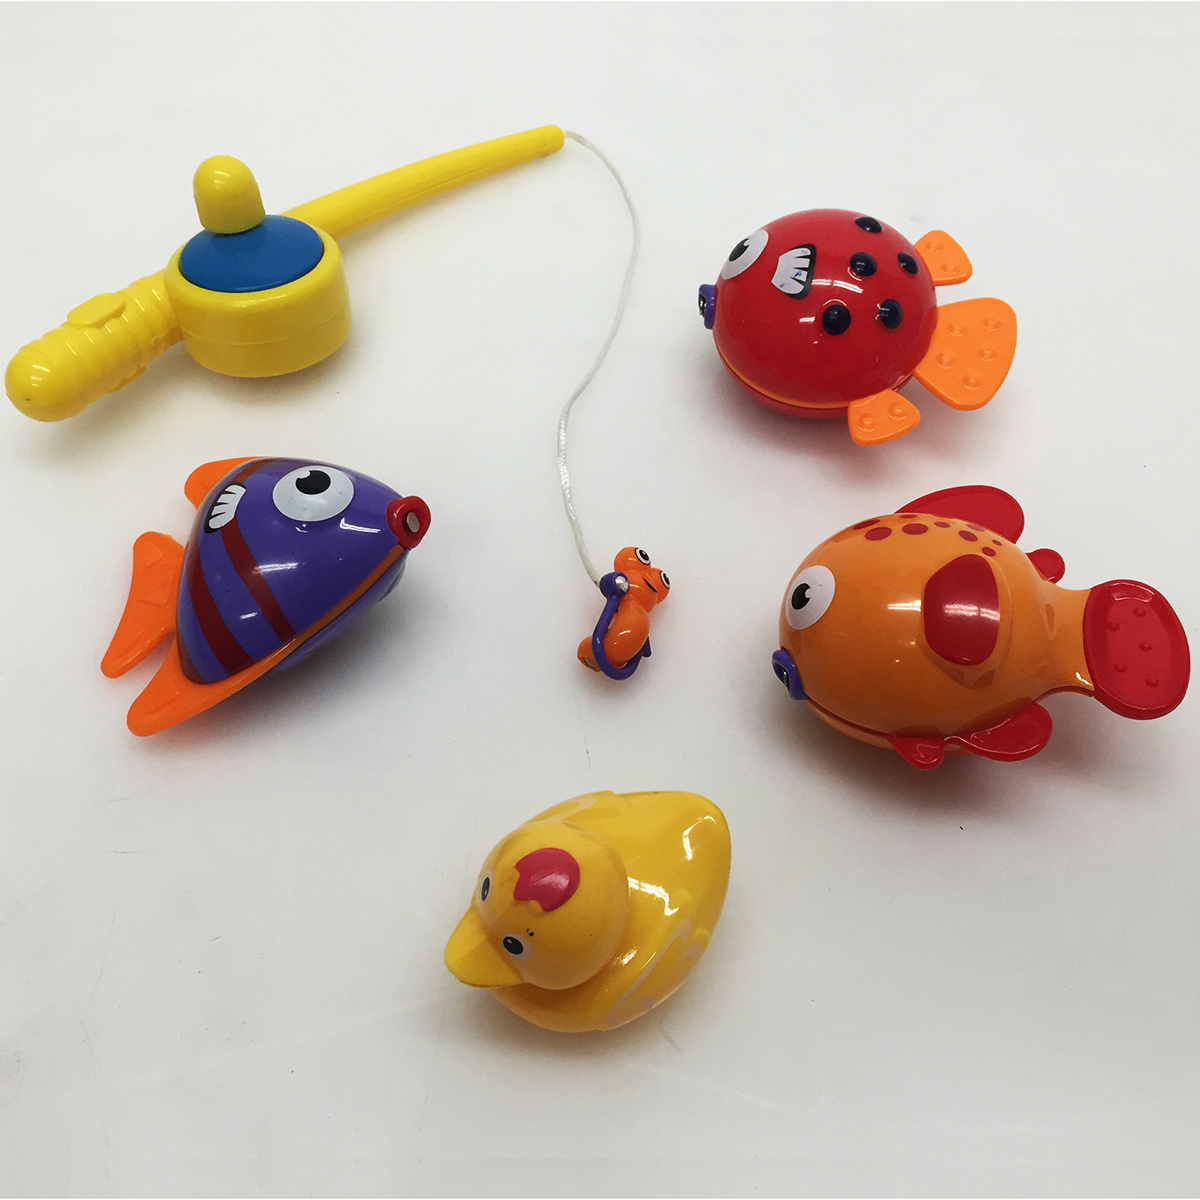 Baby fishing pole toy playset for kids bathtub bath fun for Baby fishing pole